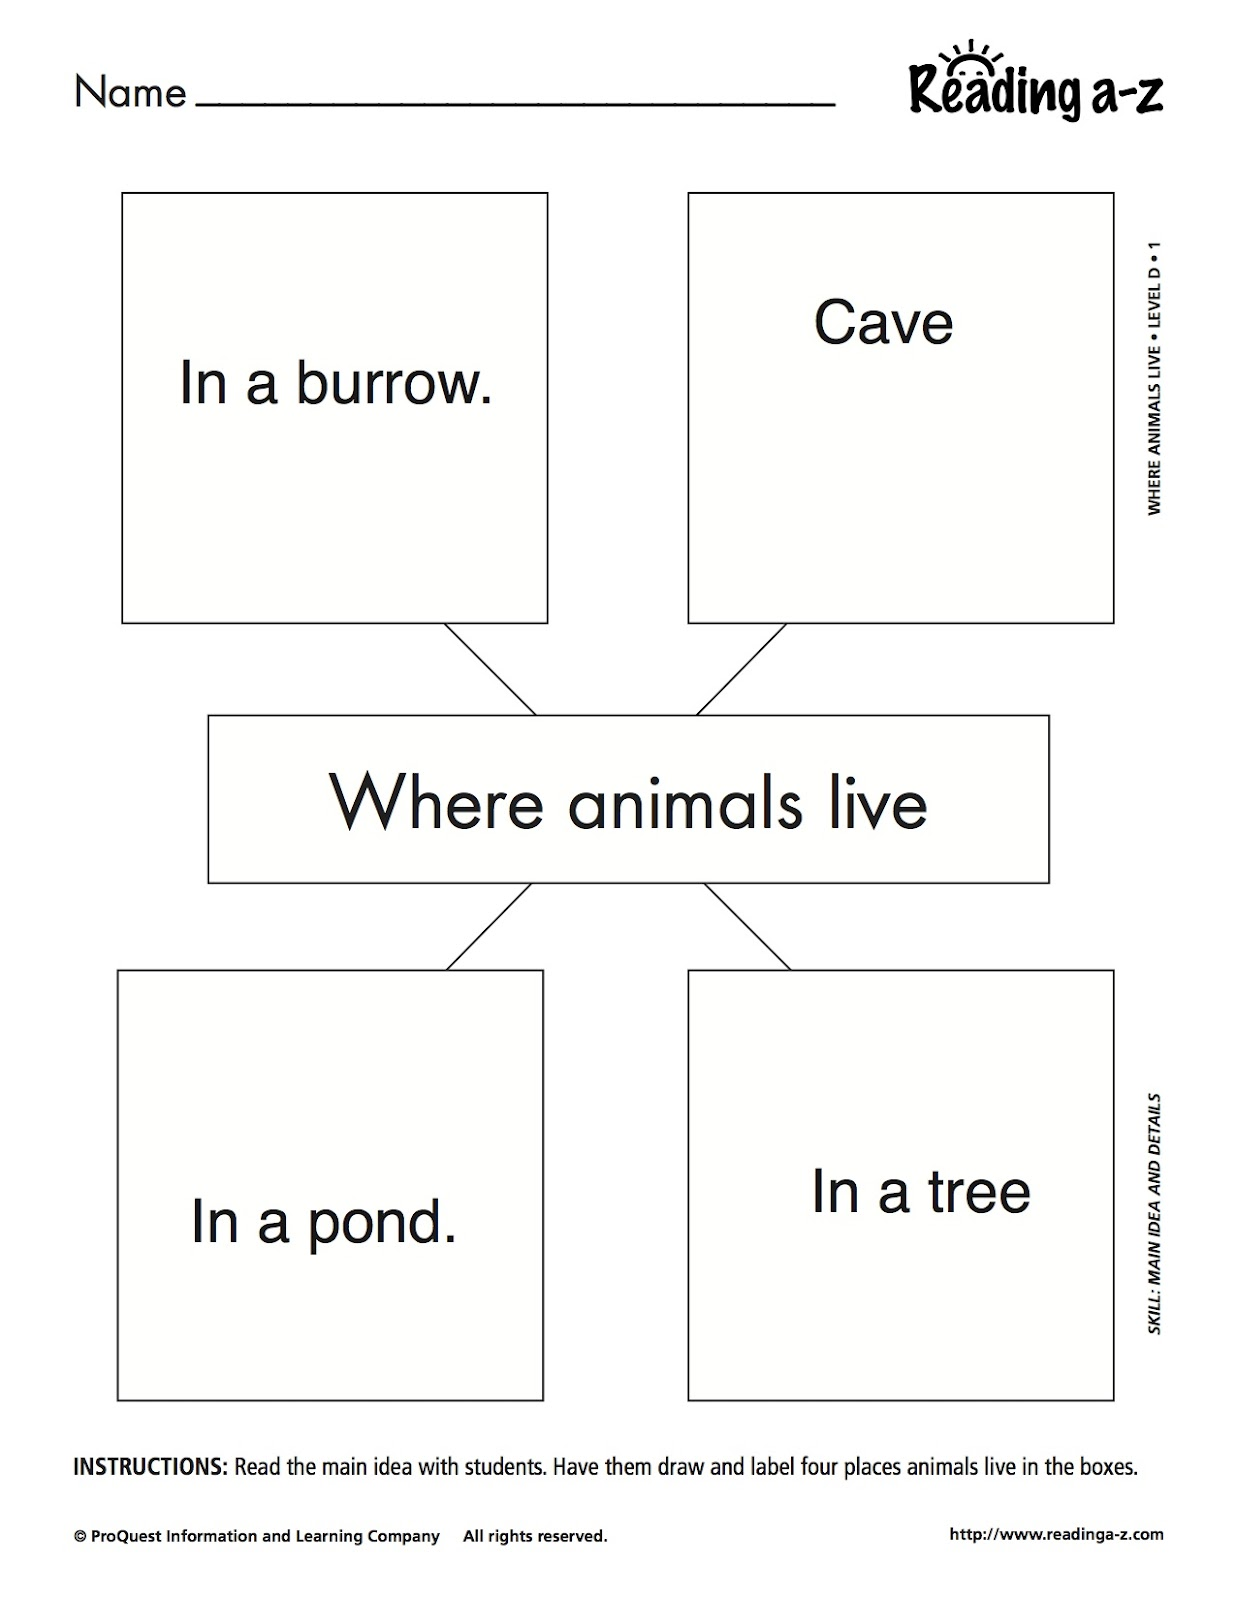 Uncategorized Central Idea Worksheets chapel hill snippets september 2012 this is the completed worksheet main idea was in center rectangle where animals live student had to then provide four examples from book